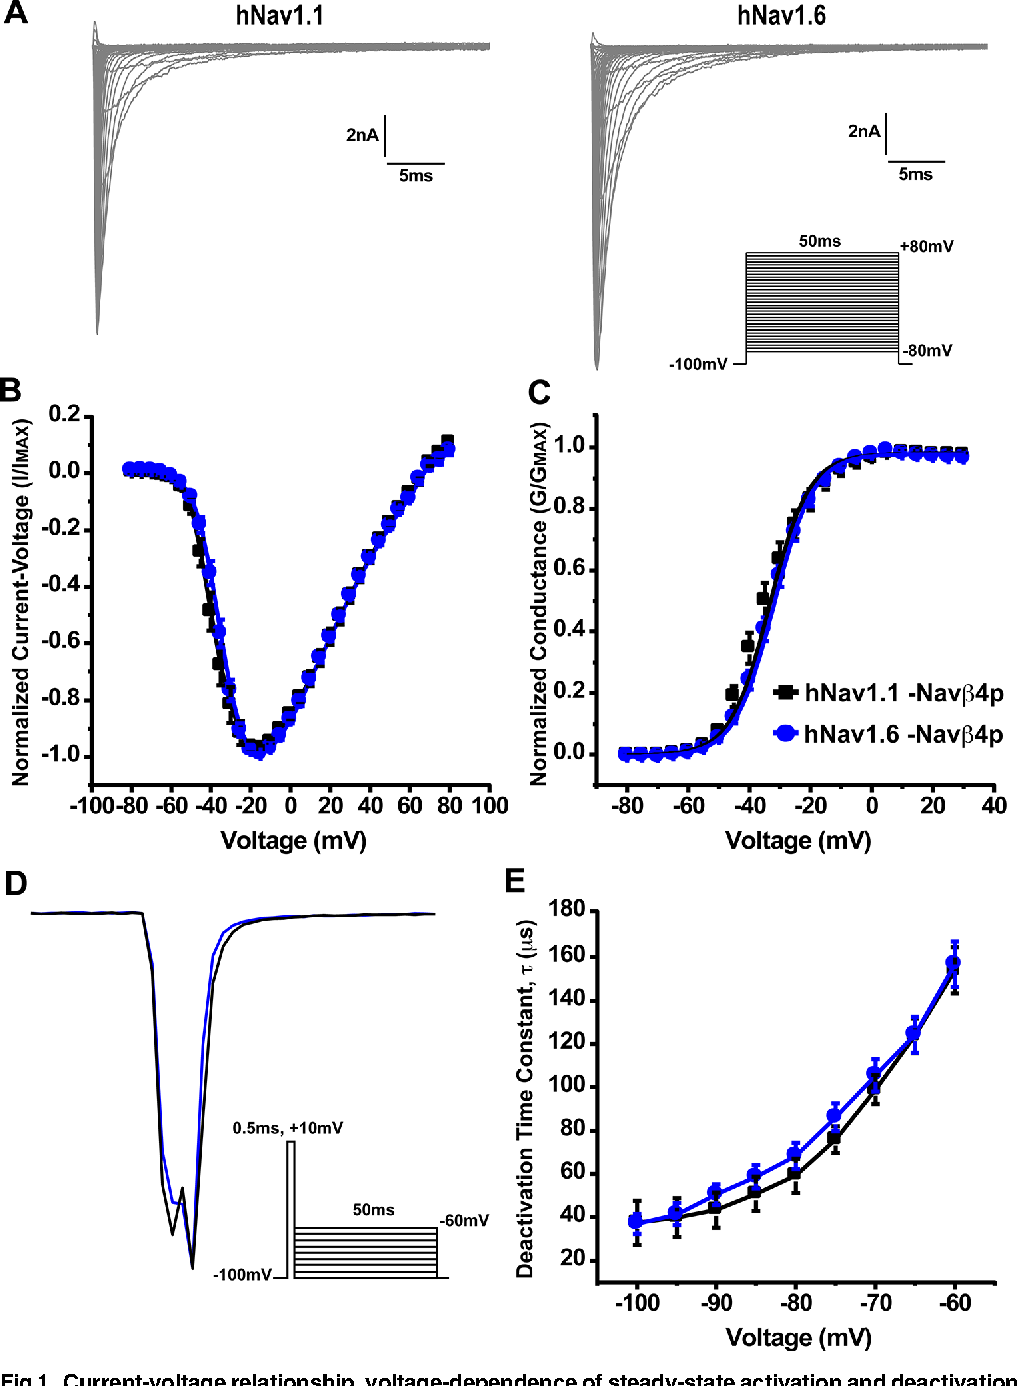 Figure 1 From Human Nav16 Channels Generate Larger Resurgent To The Left Is A Diagram For Generation Of Electricity Fig Current Voltage Relationship Dependence Steady State Activation